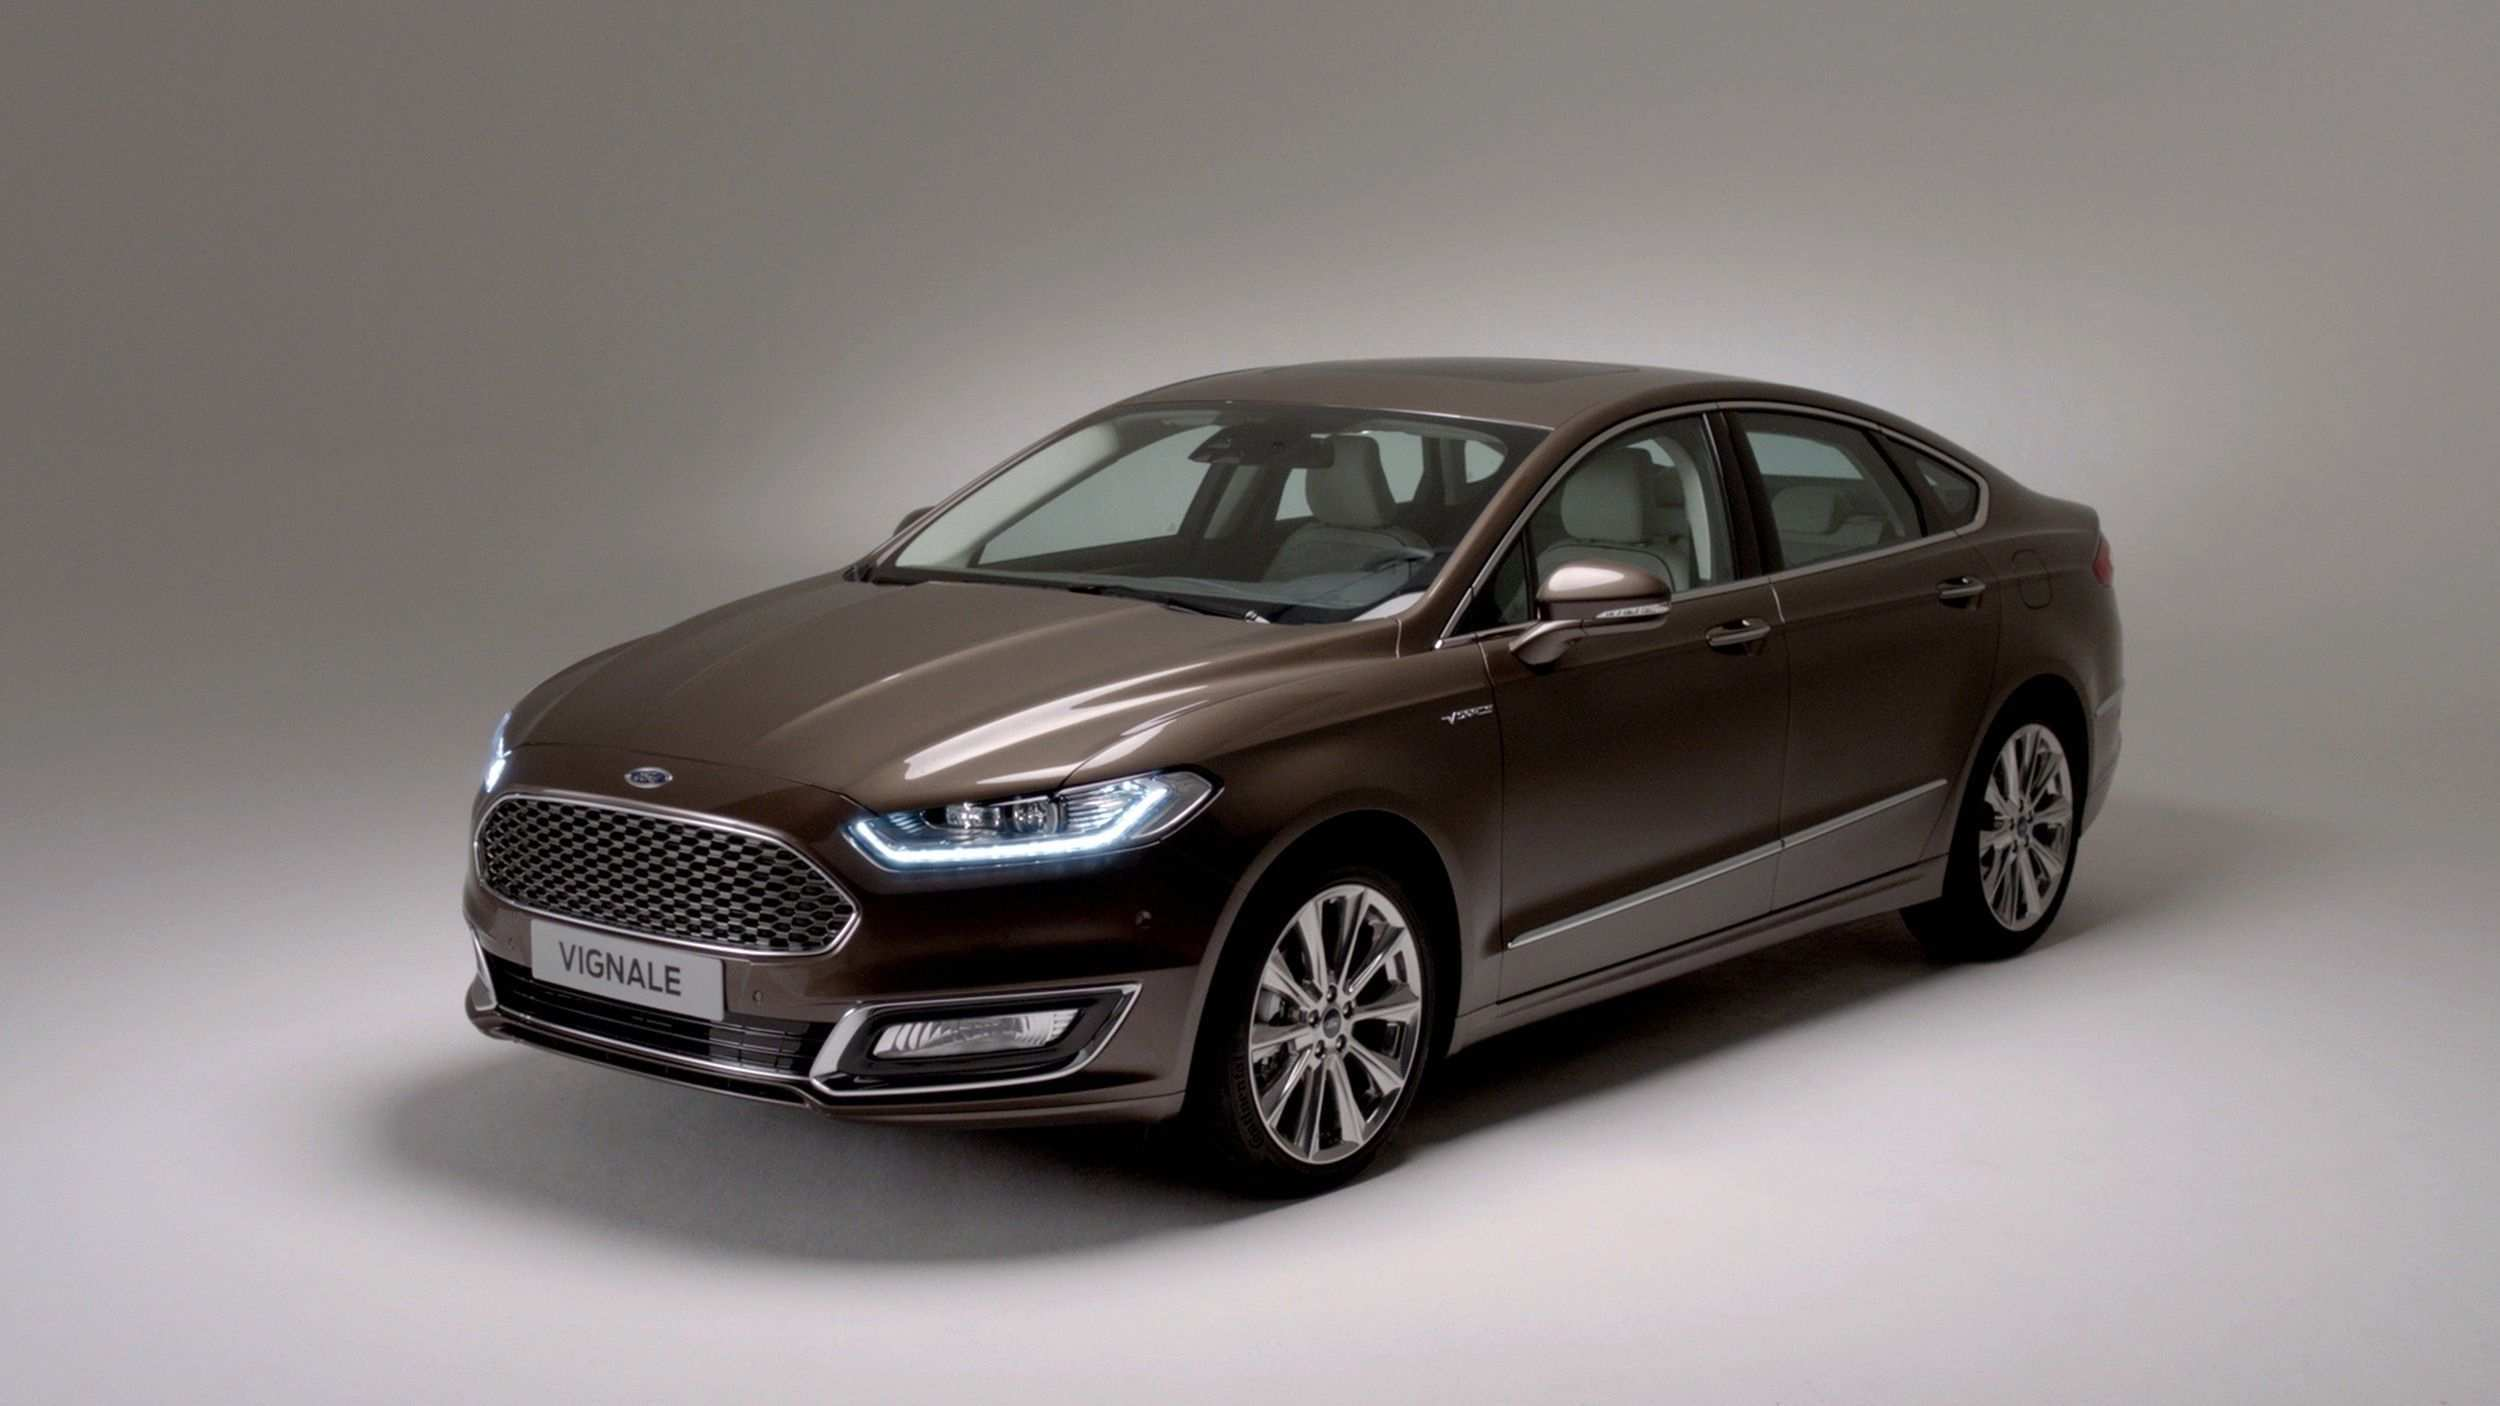 38 Concept of 2020 Ford Mondeo Vignale Specs and Review with 2020 Ford Mondeo Vignale